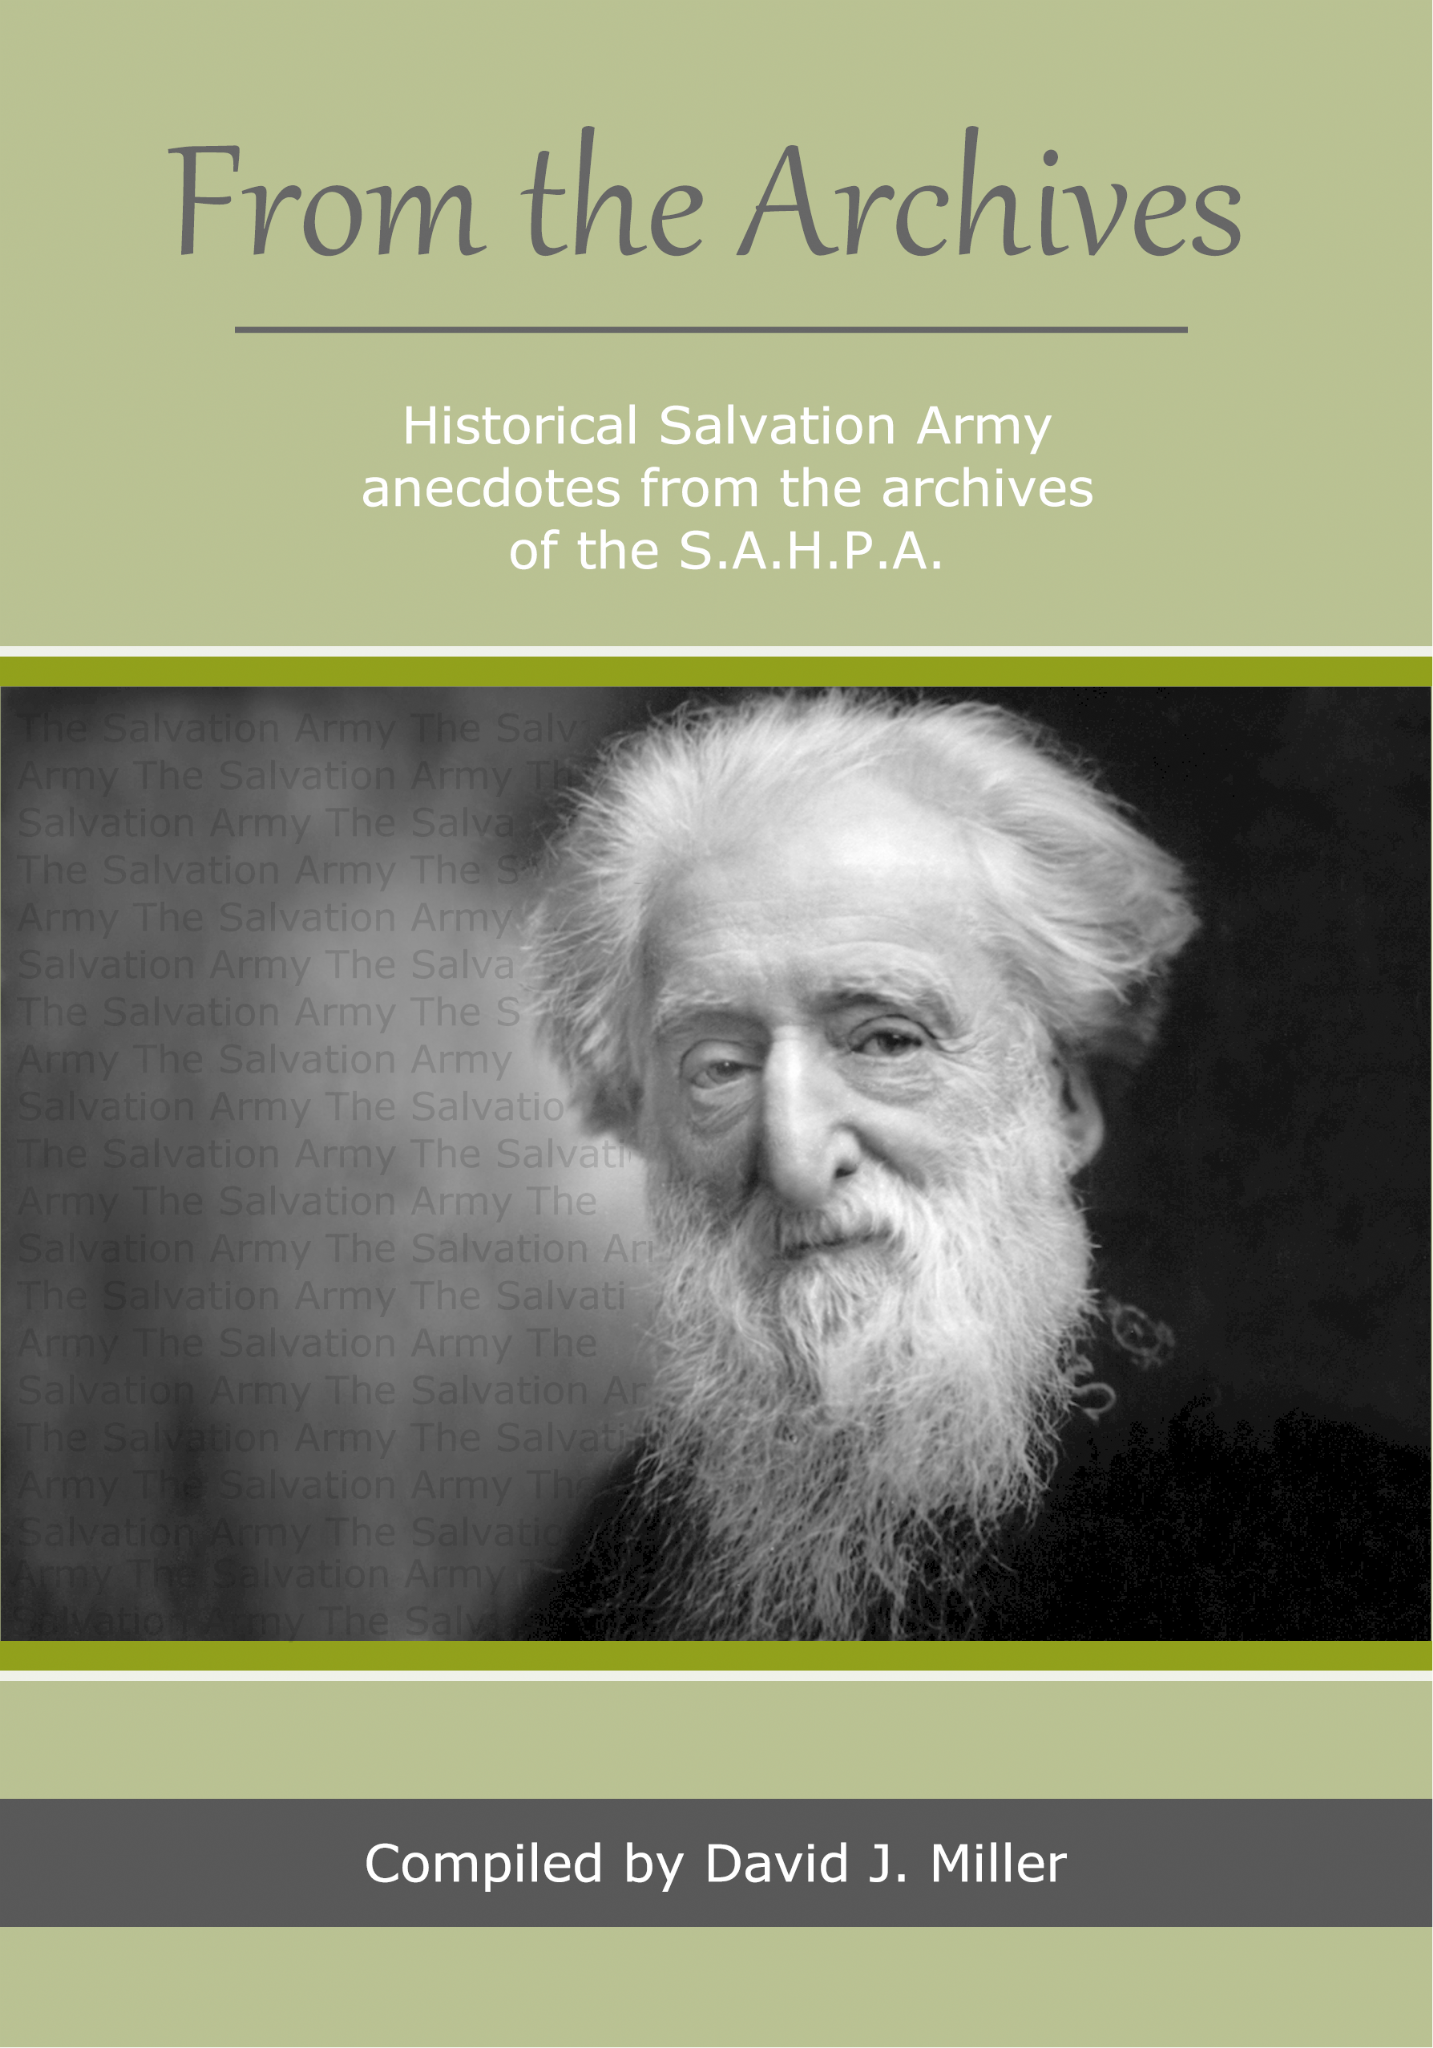 From the Archives - Historical Salvation Army anecdotes from the archives of S.A.H.P.A.